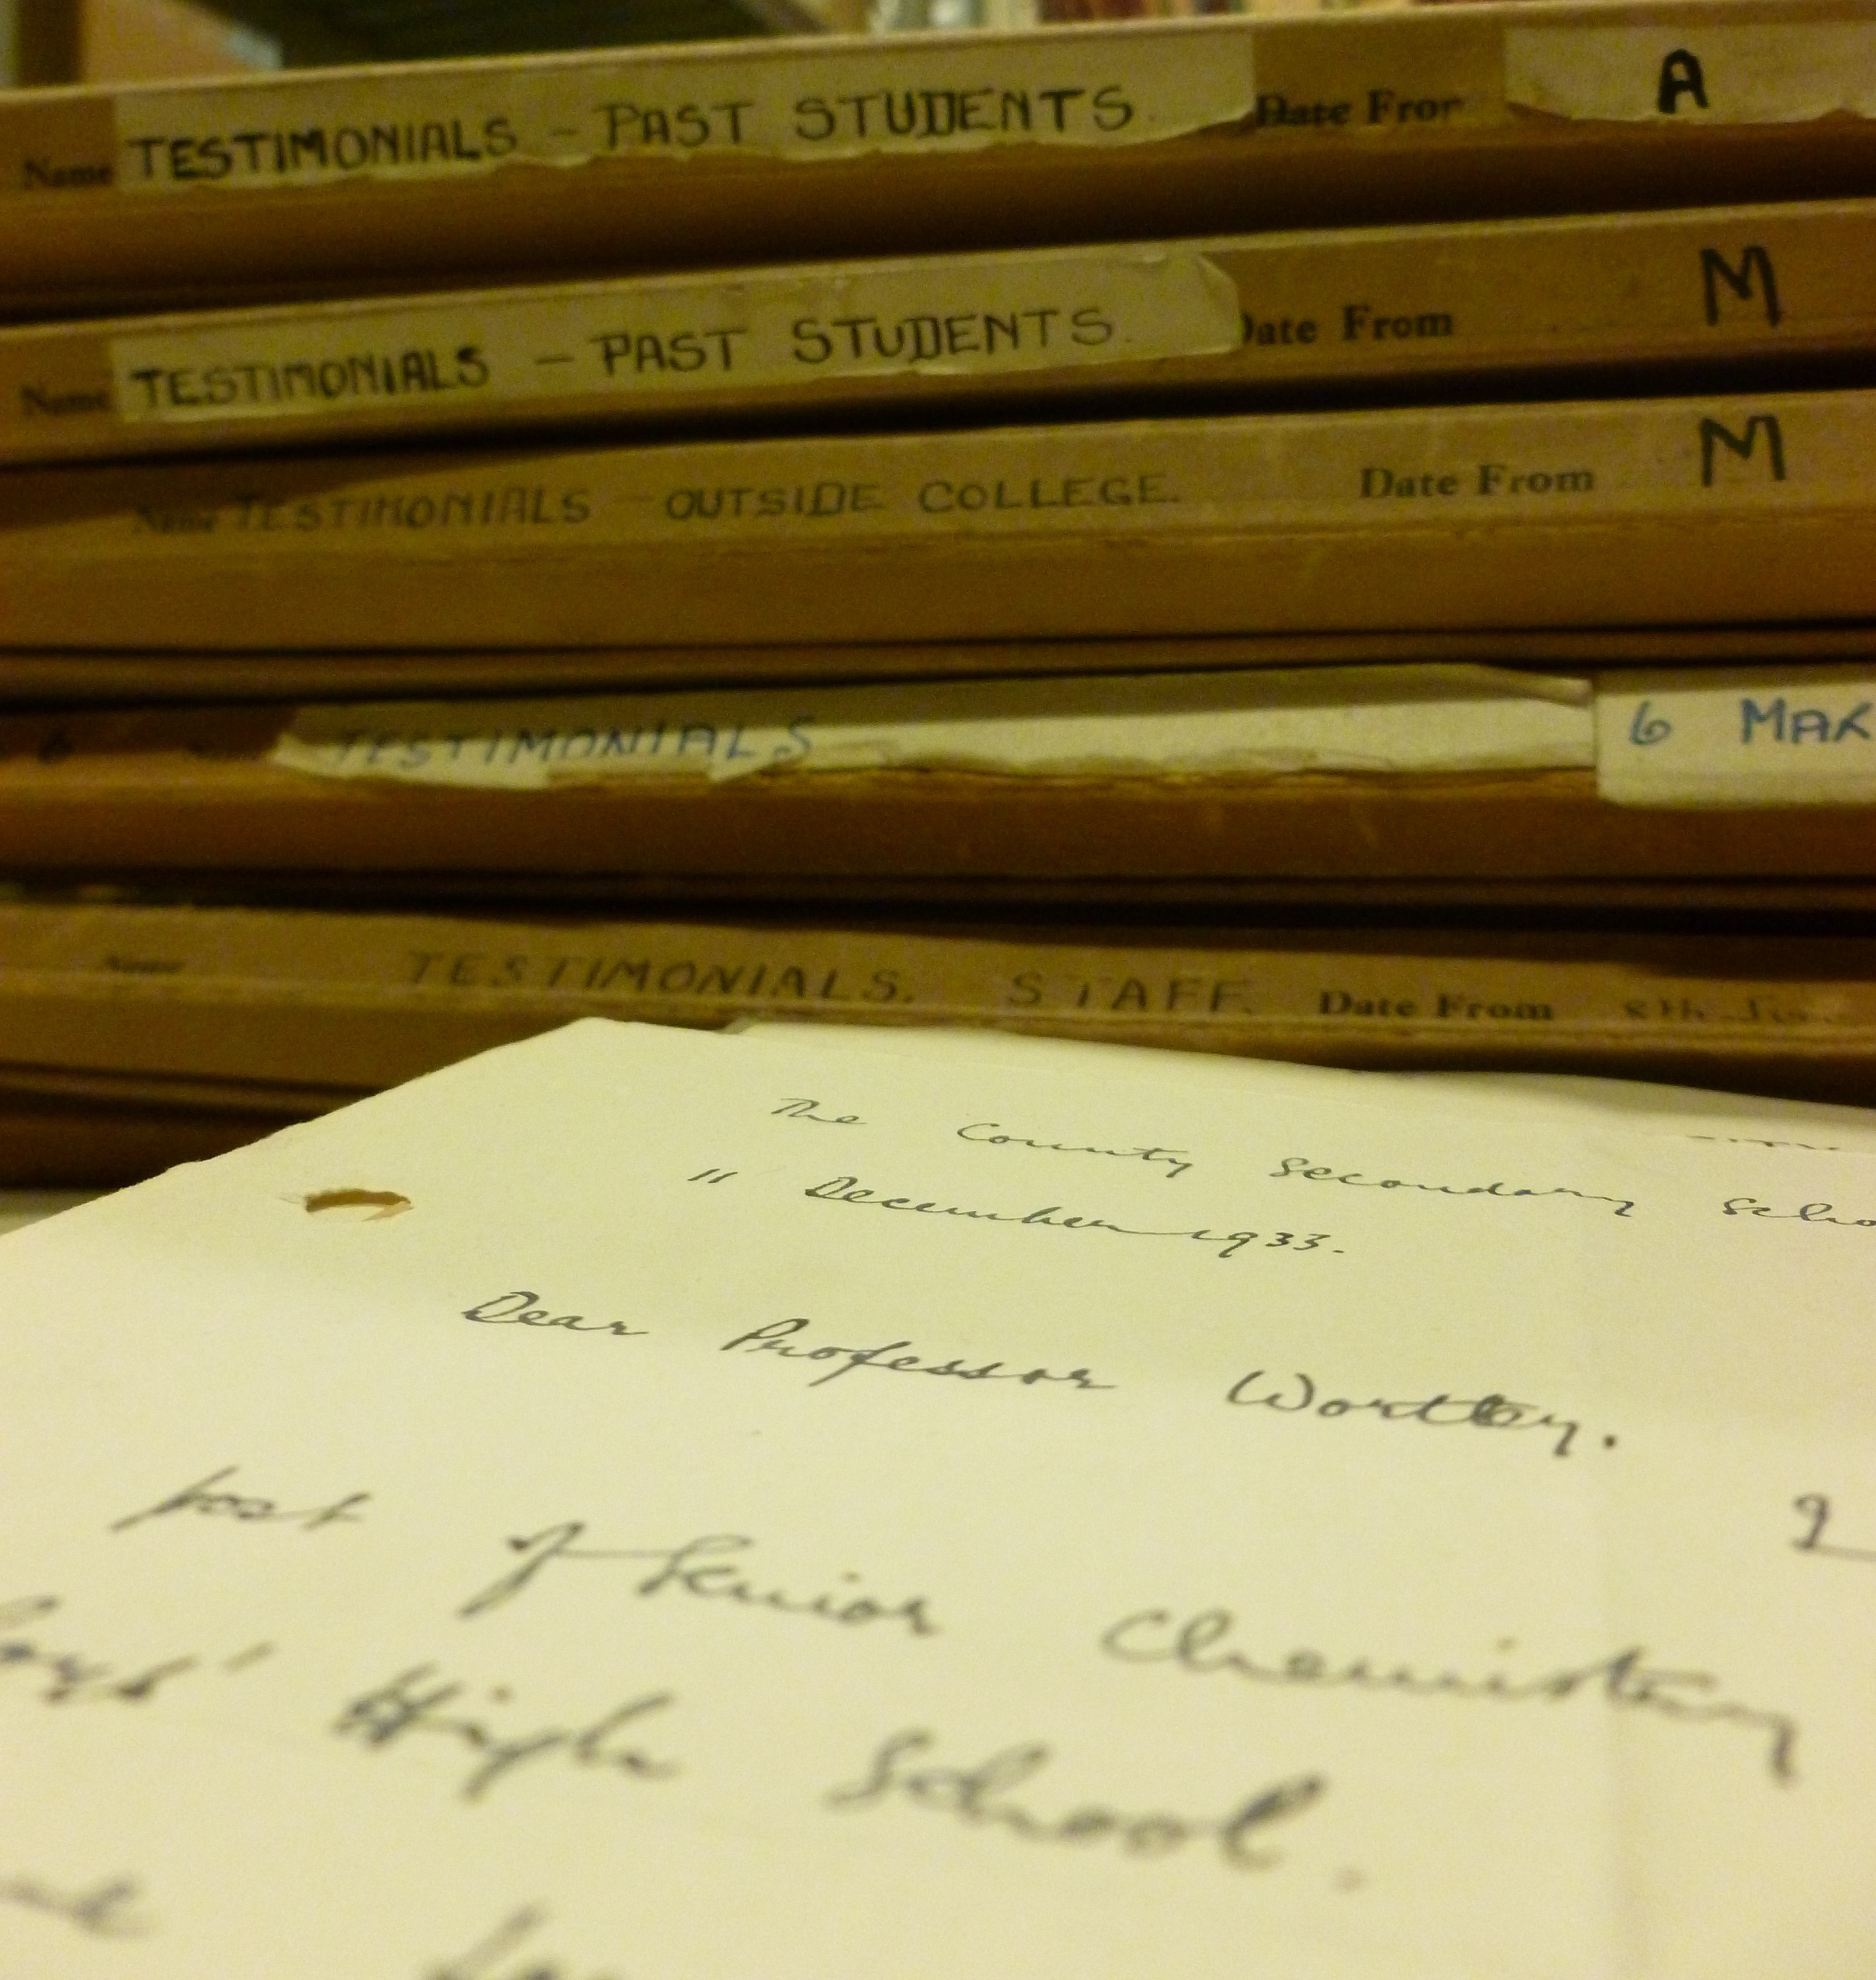 A stack of folders of UCN Testimonials from the 1930s